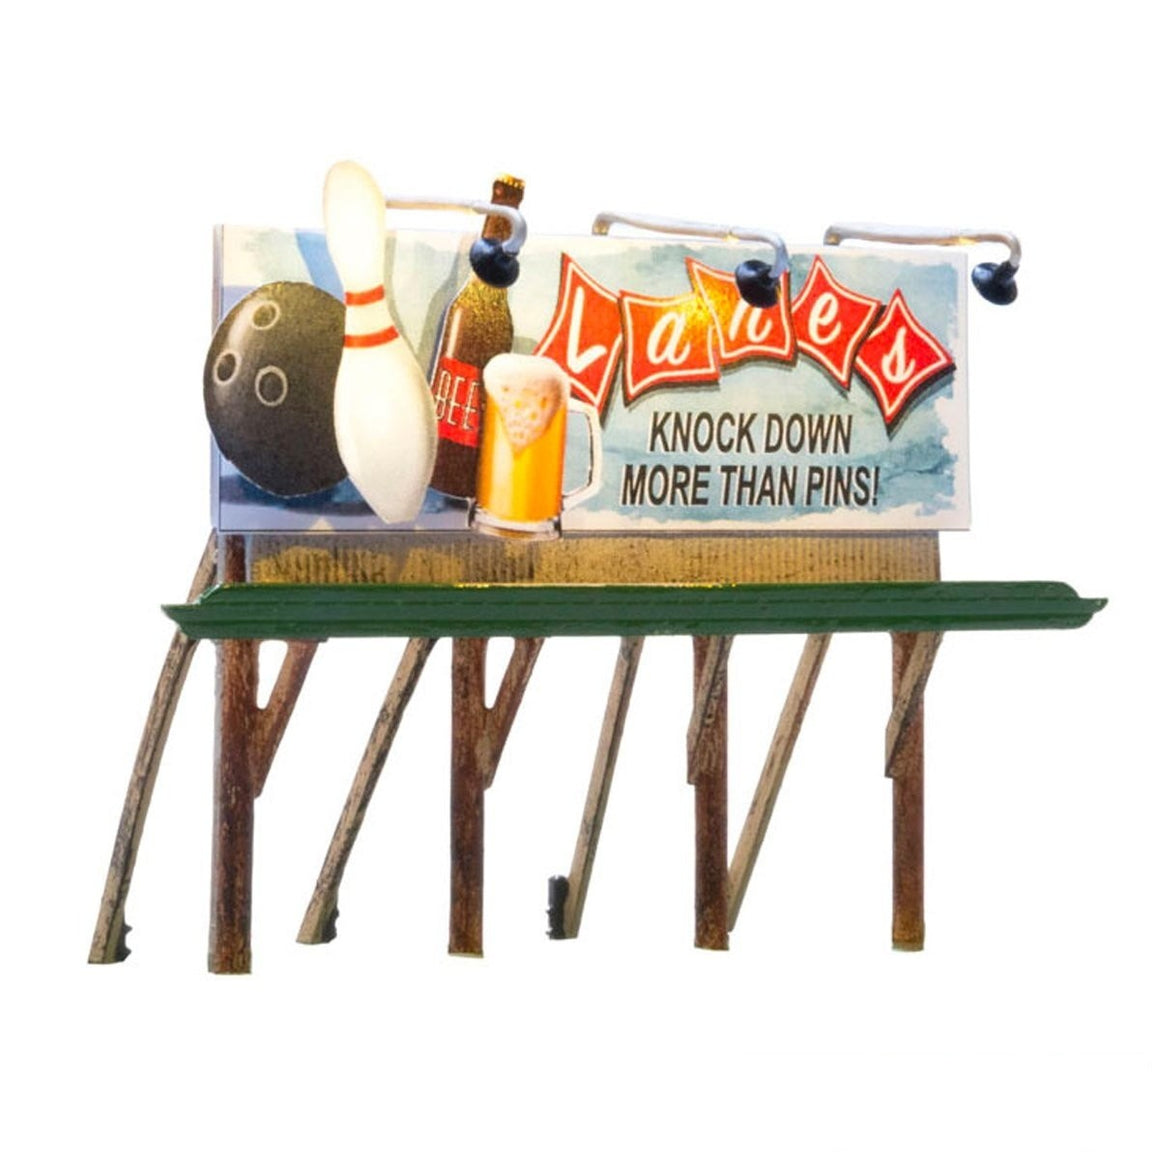 HO Scale: Just Plug® Lighted Billboard - Lane's Bowling & Bar